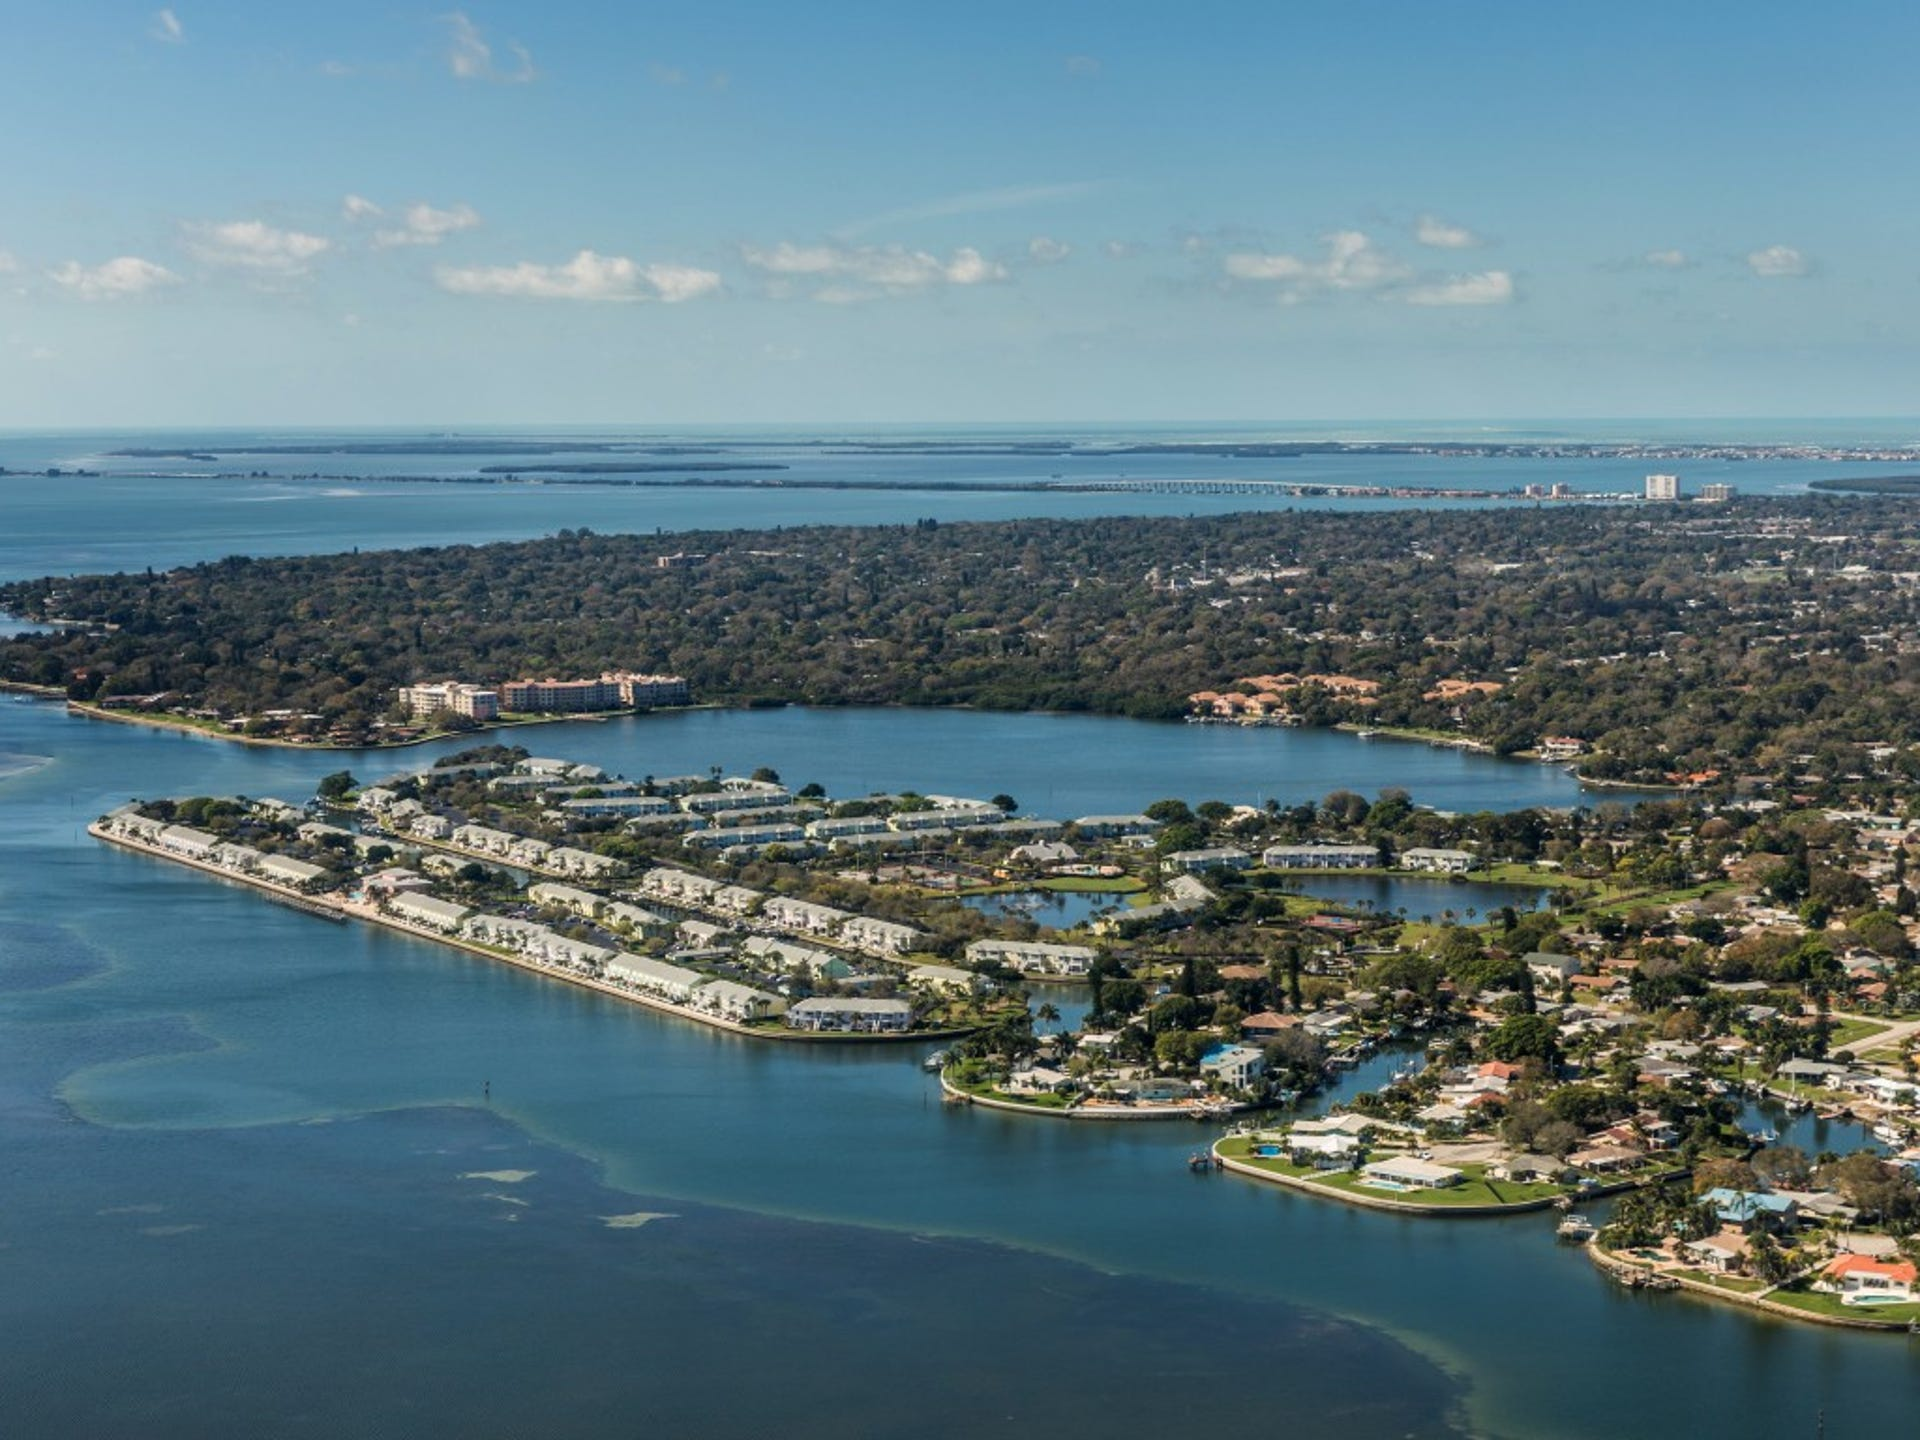 8. Bradenton, FL     • Total properties at risk of hurricane damage:  262,745     • Reconstruction cost value of properties:  $53.8 billion     • Metro area population:  821,573     • Recent severe hurricane:  Hermine (2016) Bradenton, Florida, which together with Sarasota forms the Sarasota metropolitan area, is located on Florida's western coast, just south of Tampa Bay. The area managed to avoid major damage during Irma, but more than a quarter-million homes remain at risk of flooding. Bradenton is also susceptible to flooding from the Manatee River, which runs alongside it.     ALSO READ: America's Richest Beach Towns